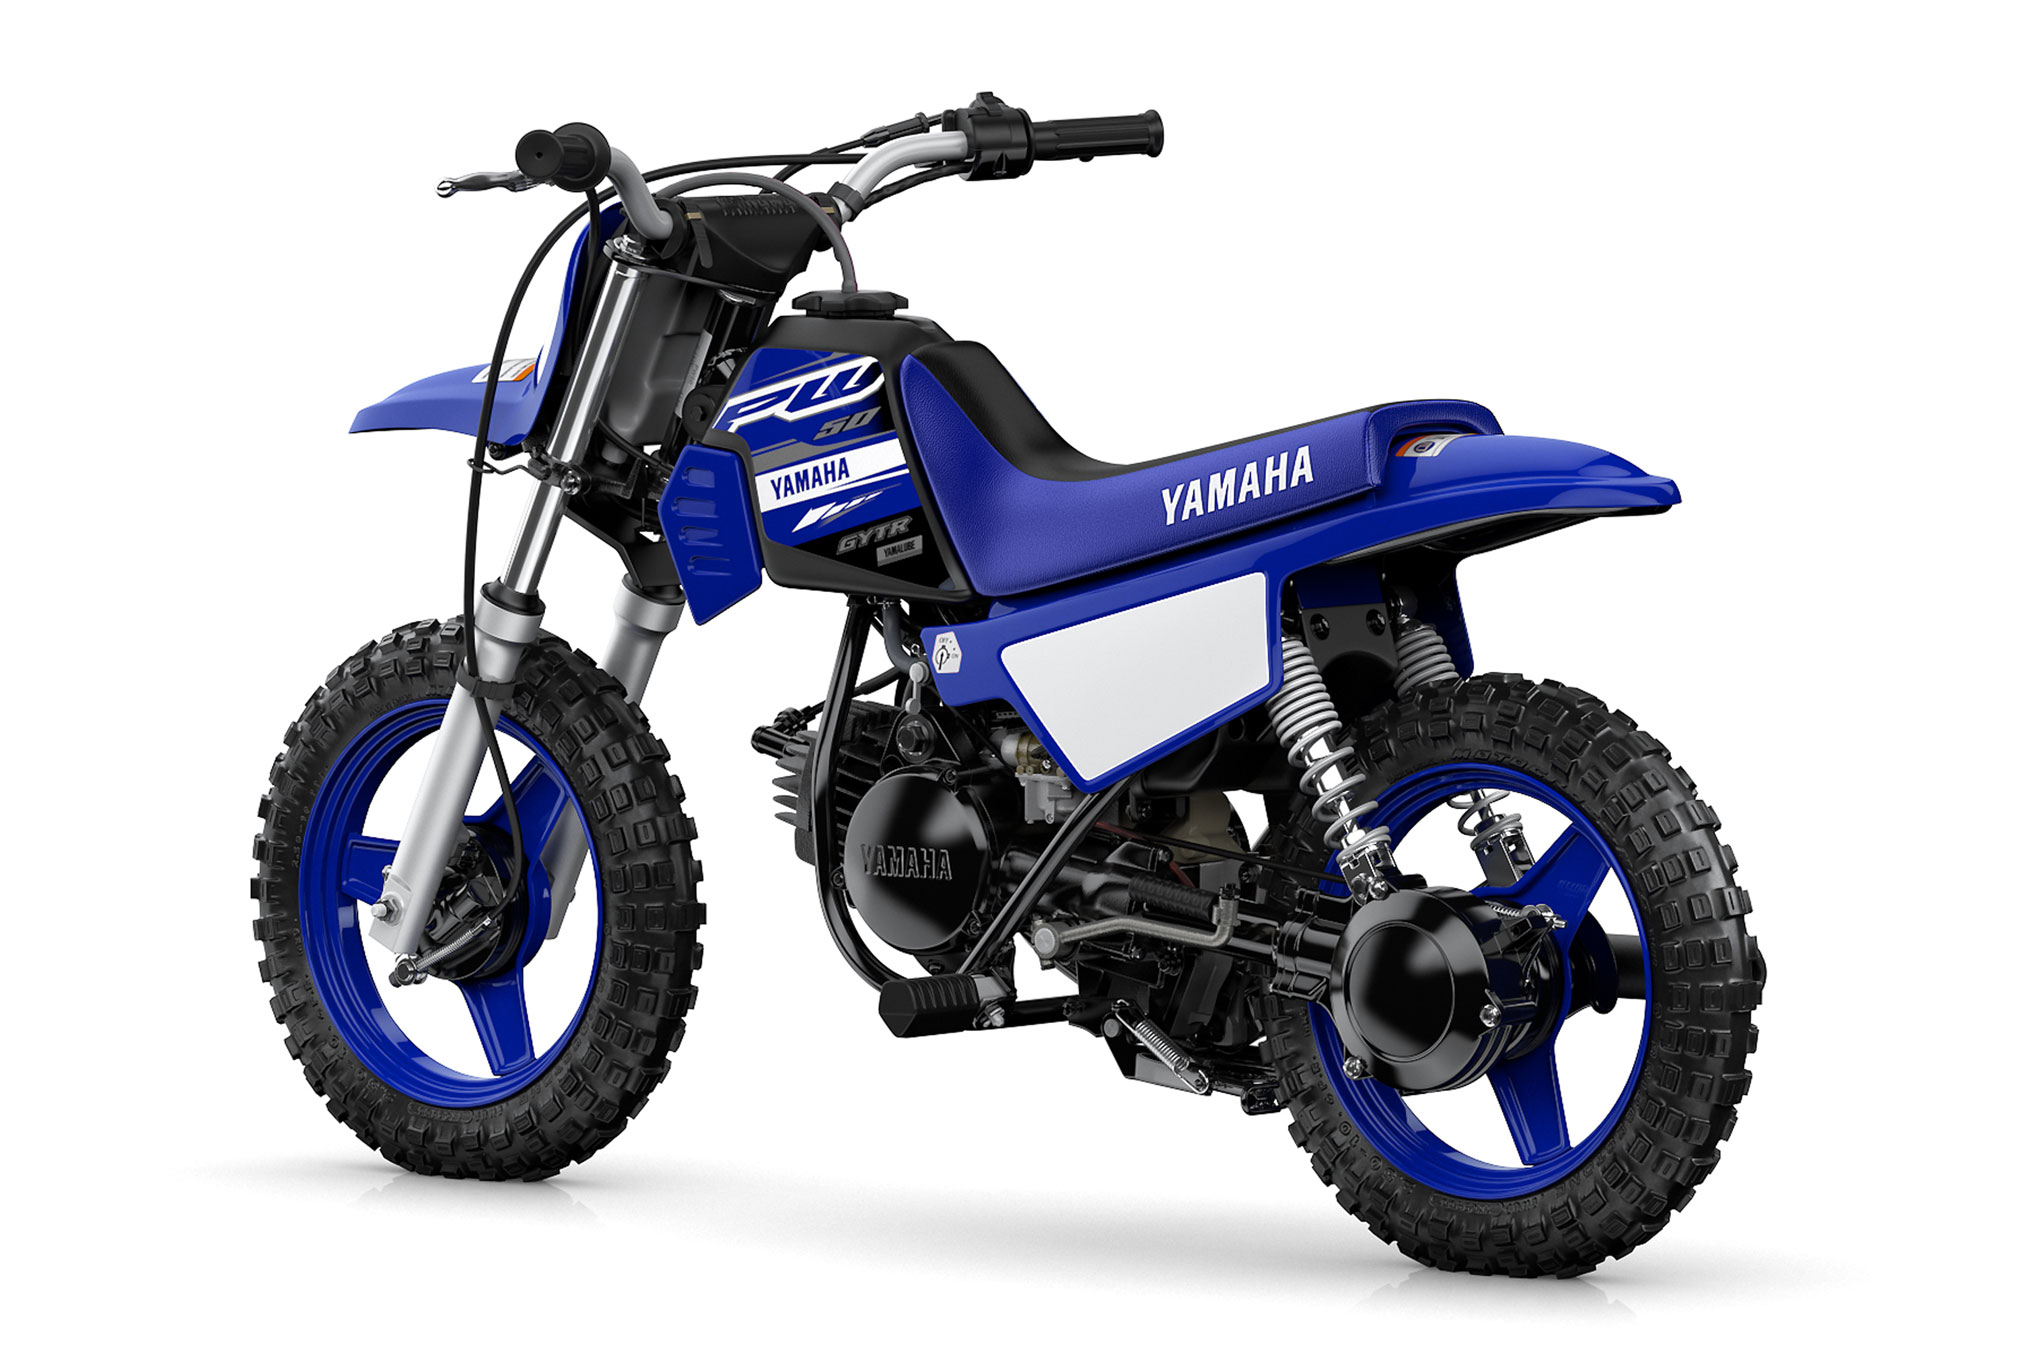 2019 yamaha pw50 guide totalmotorcycle. Black Bedroom Furniture Sets. Home Design Ideas